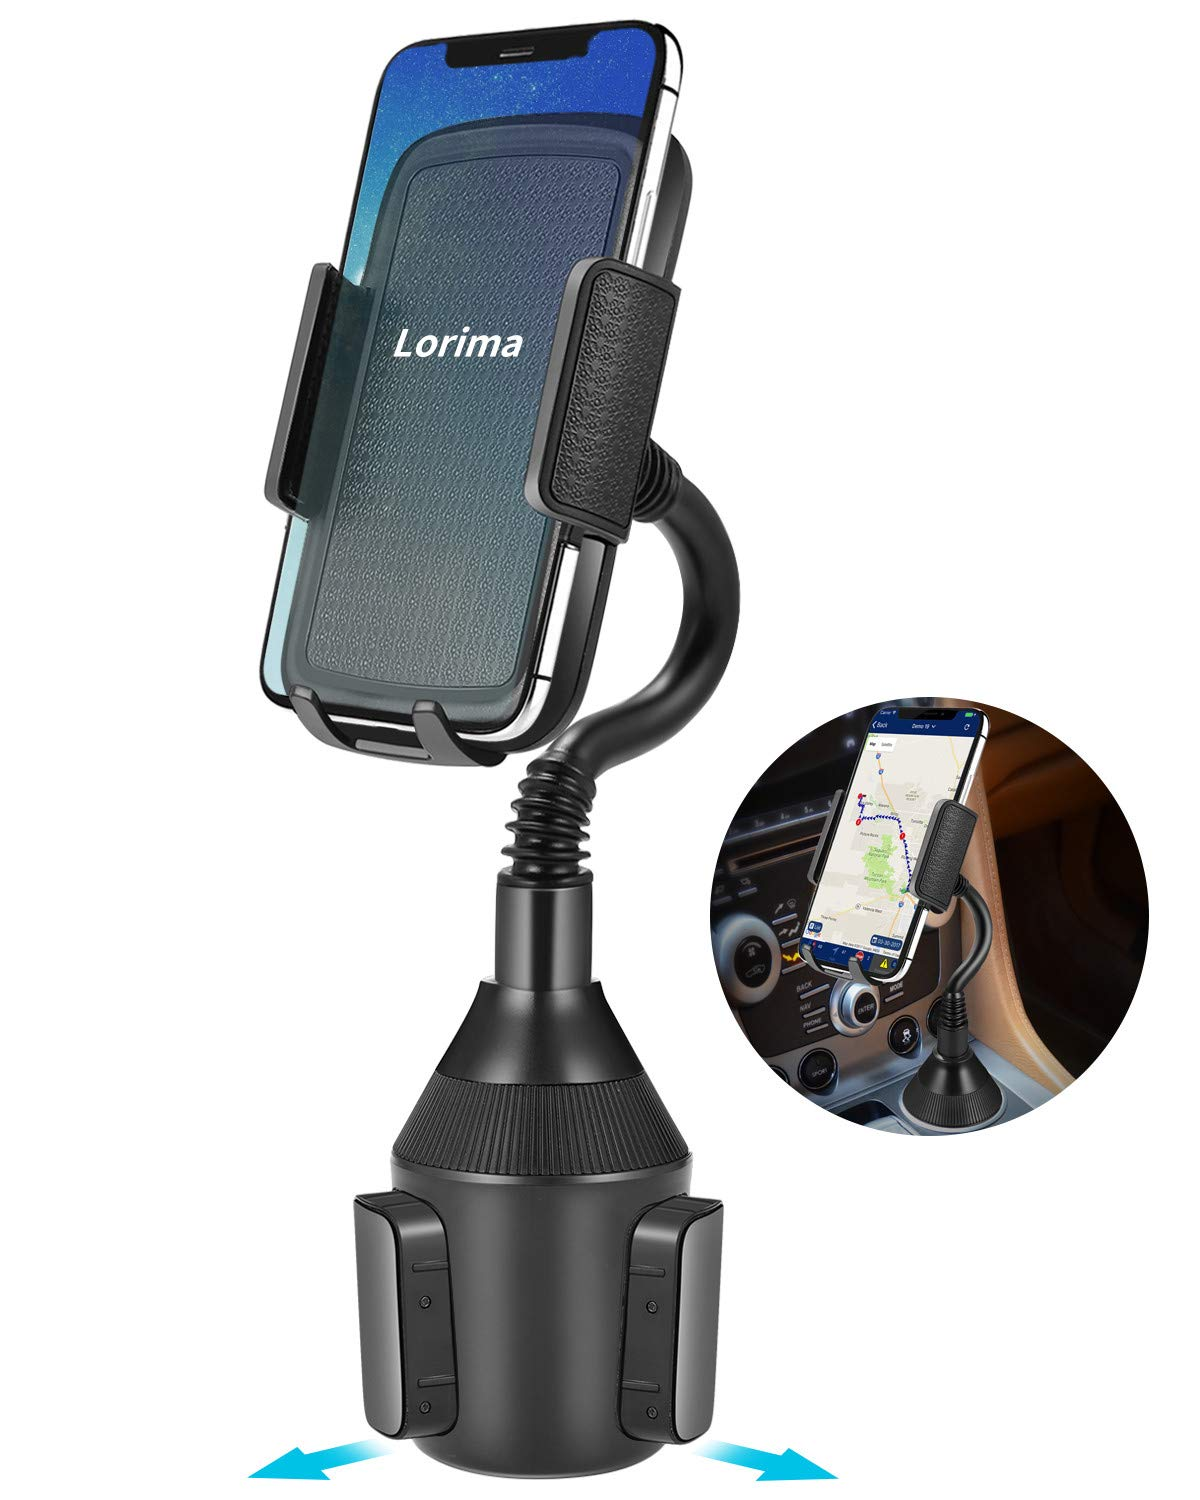 Lorima Car Cup Holder Phone Mount with a Long Flexible Neck for Cell Phones iPhone Xs/XS Max/X/8/7 Plus/Galaxy by Lorima